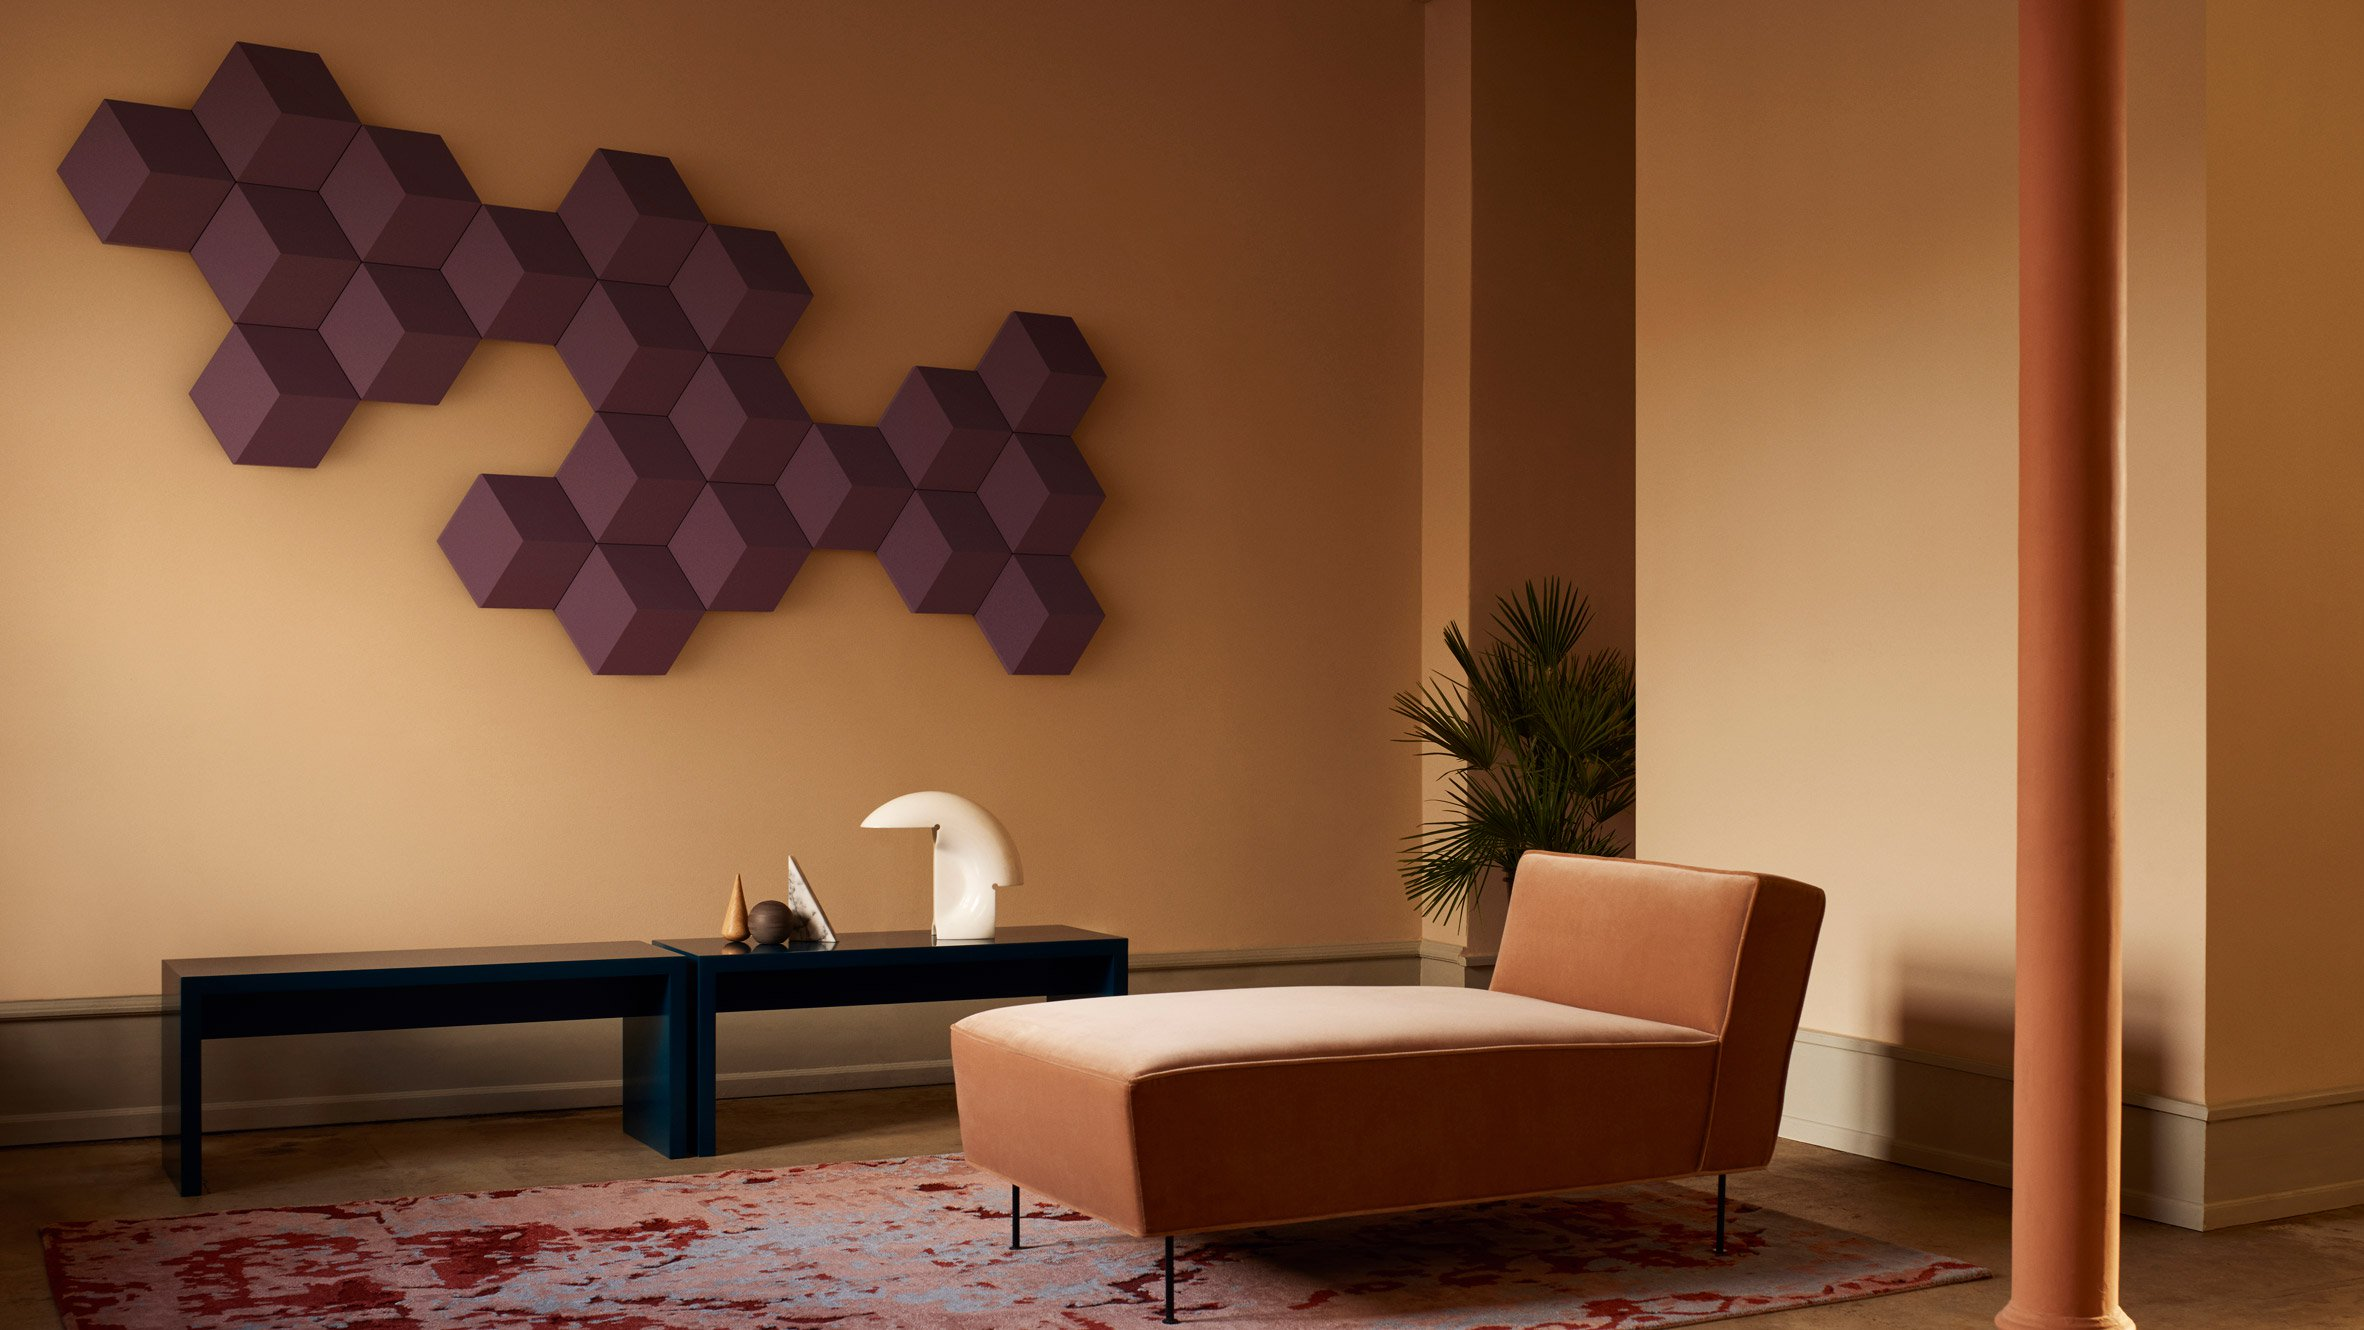 Trend Bang and Olufsen us new wall speaker system is a work of art TechRadar